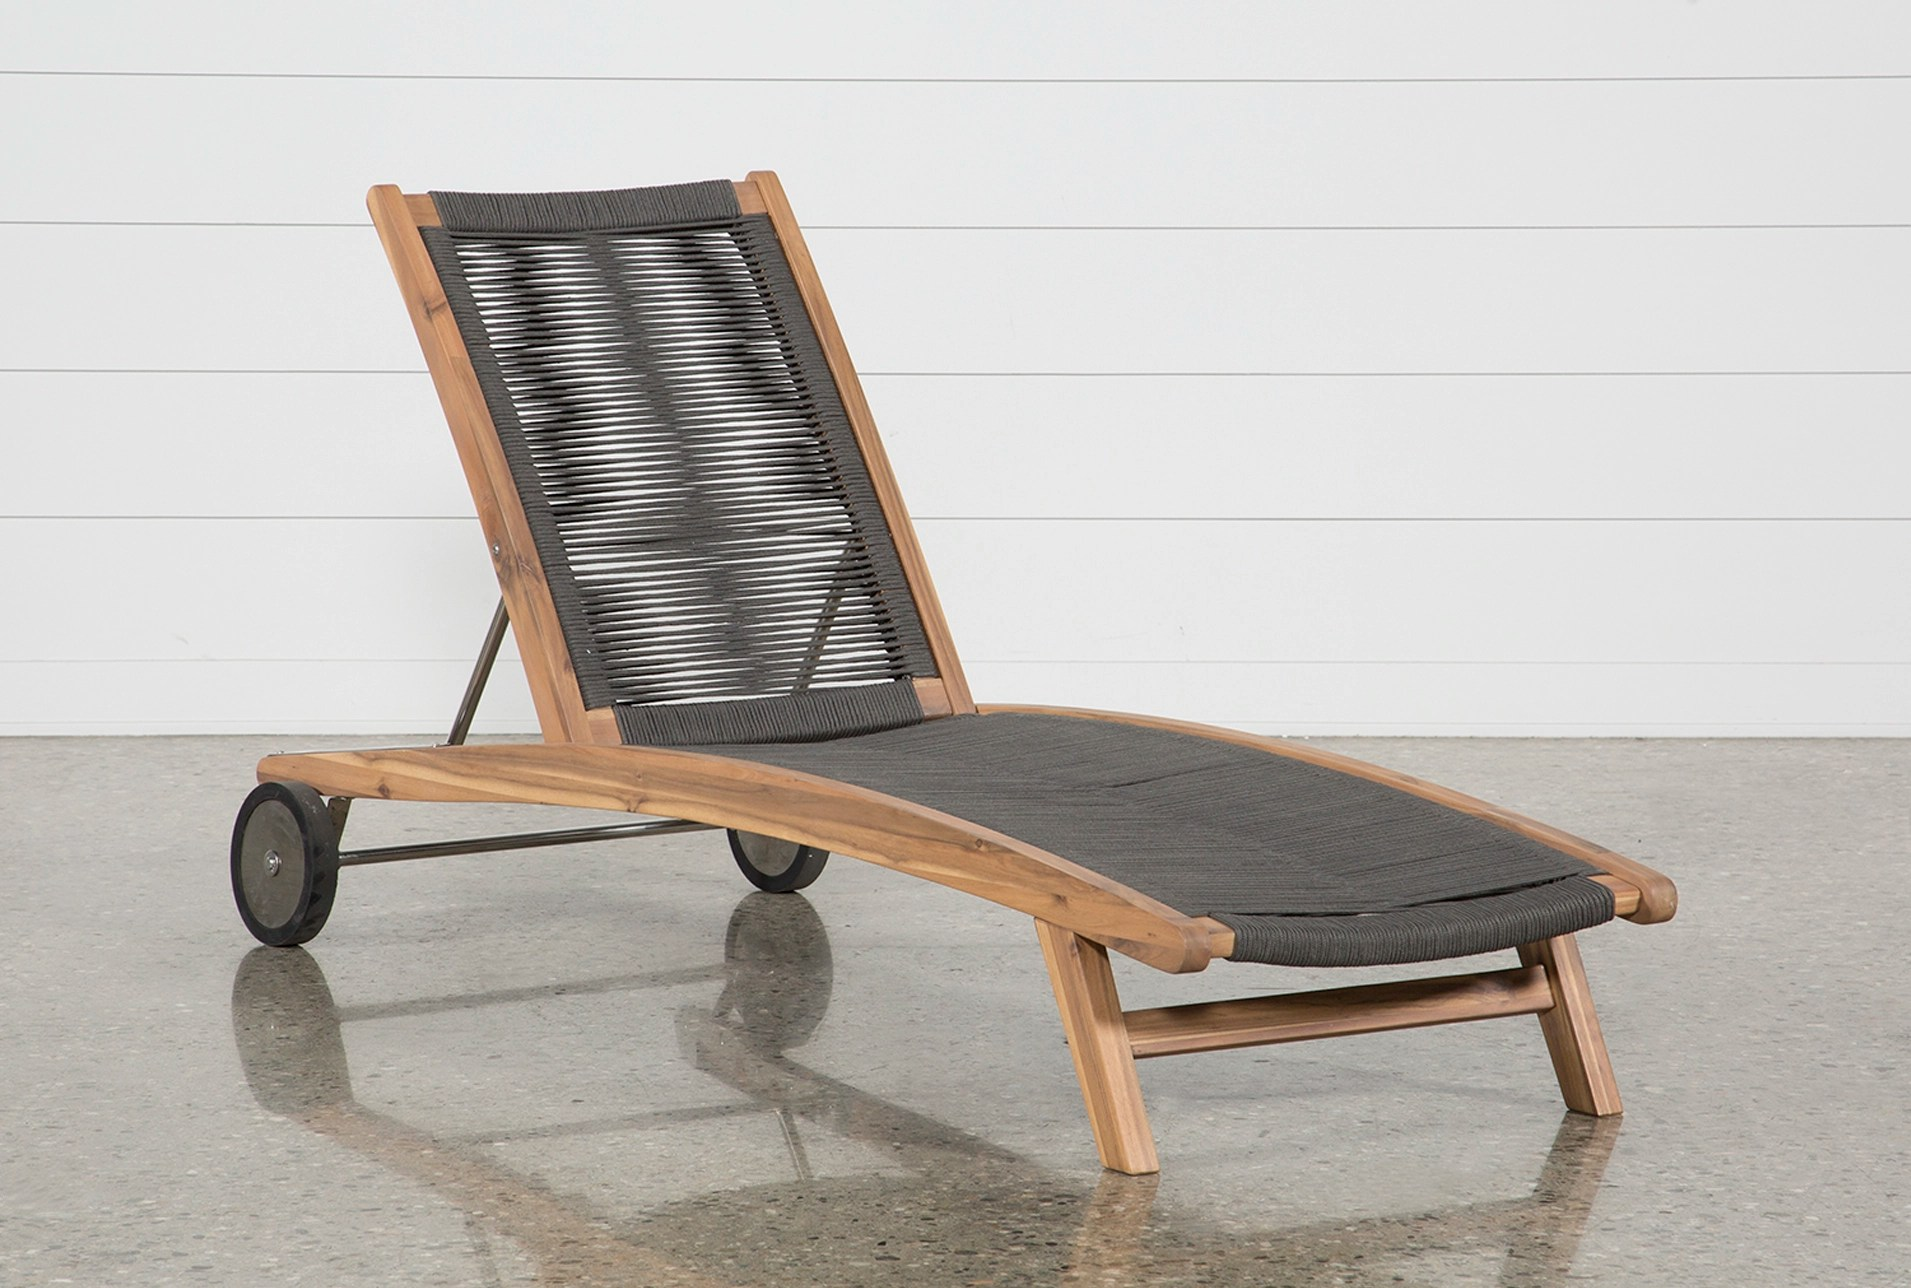 Chaiselongue Modern Outdoor Sienna Chaise Lounge